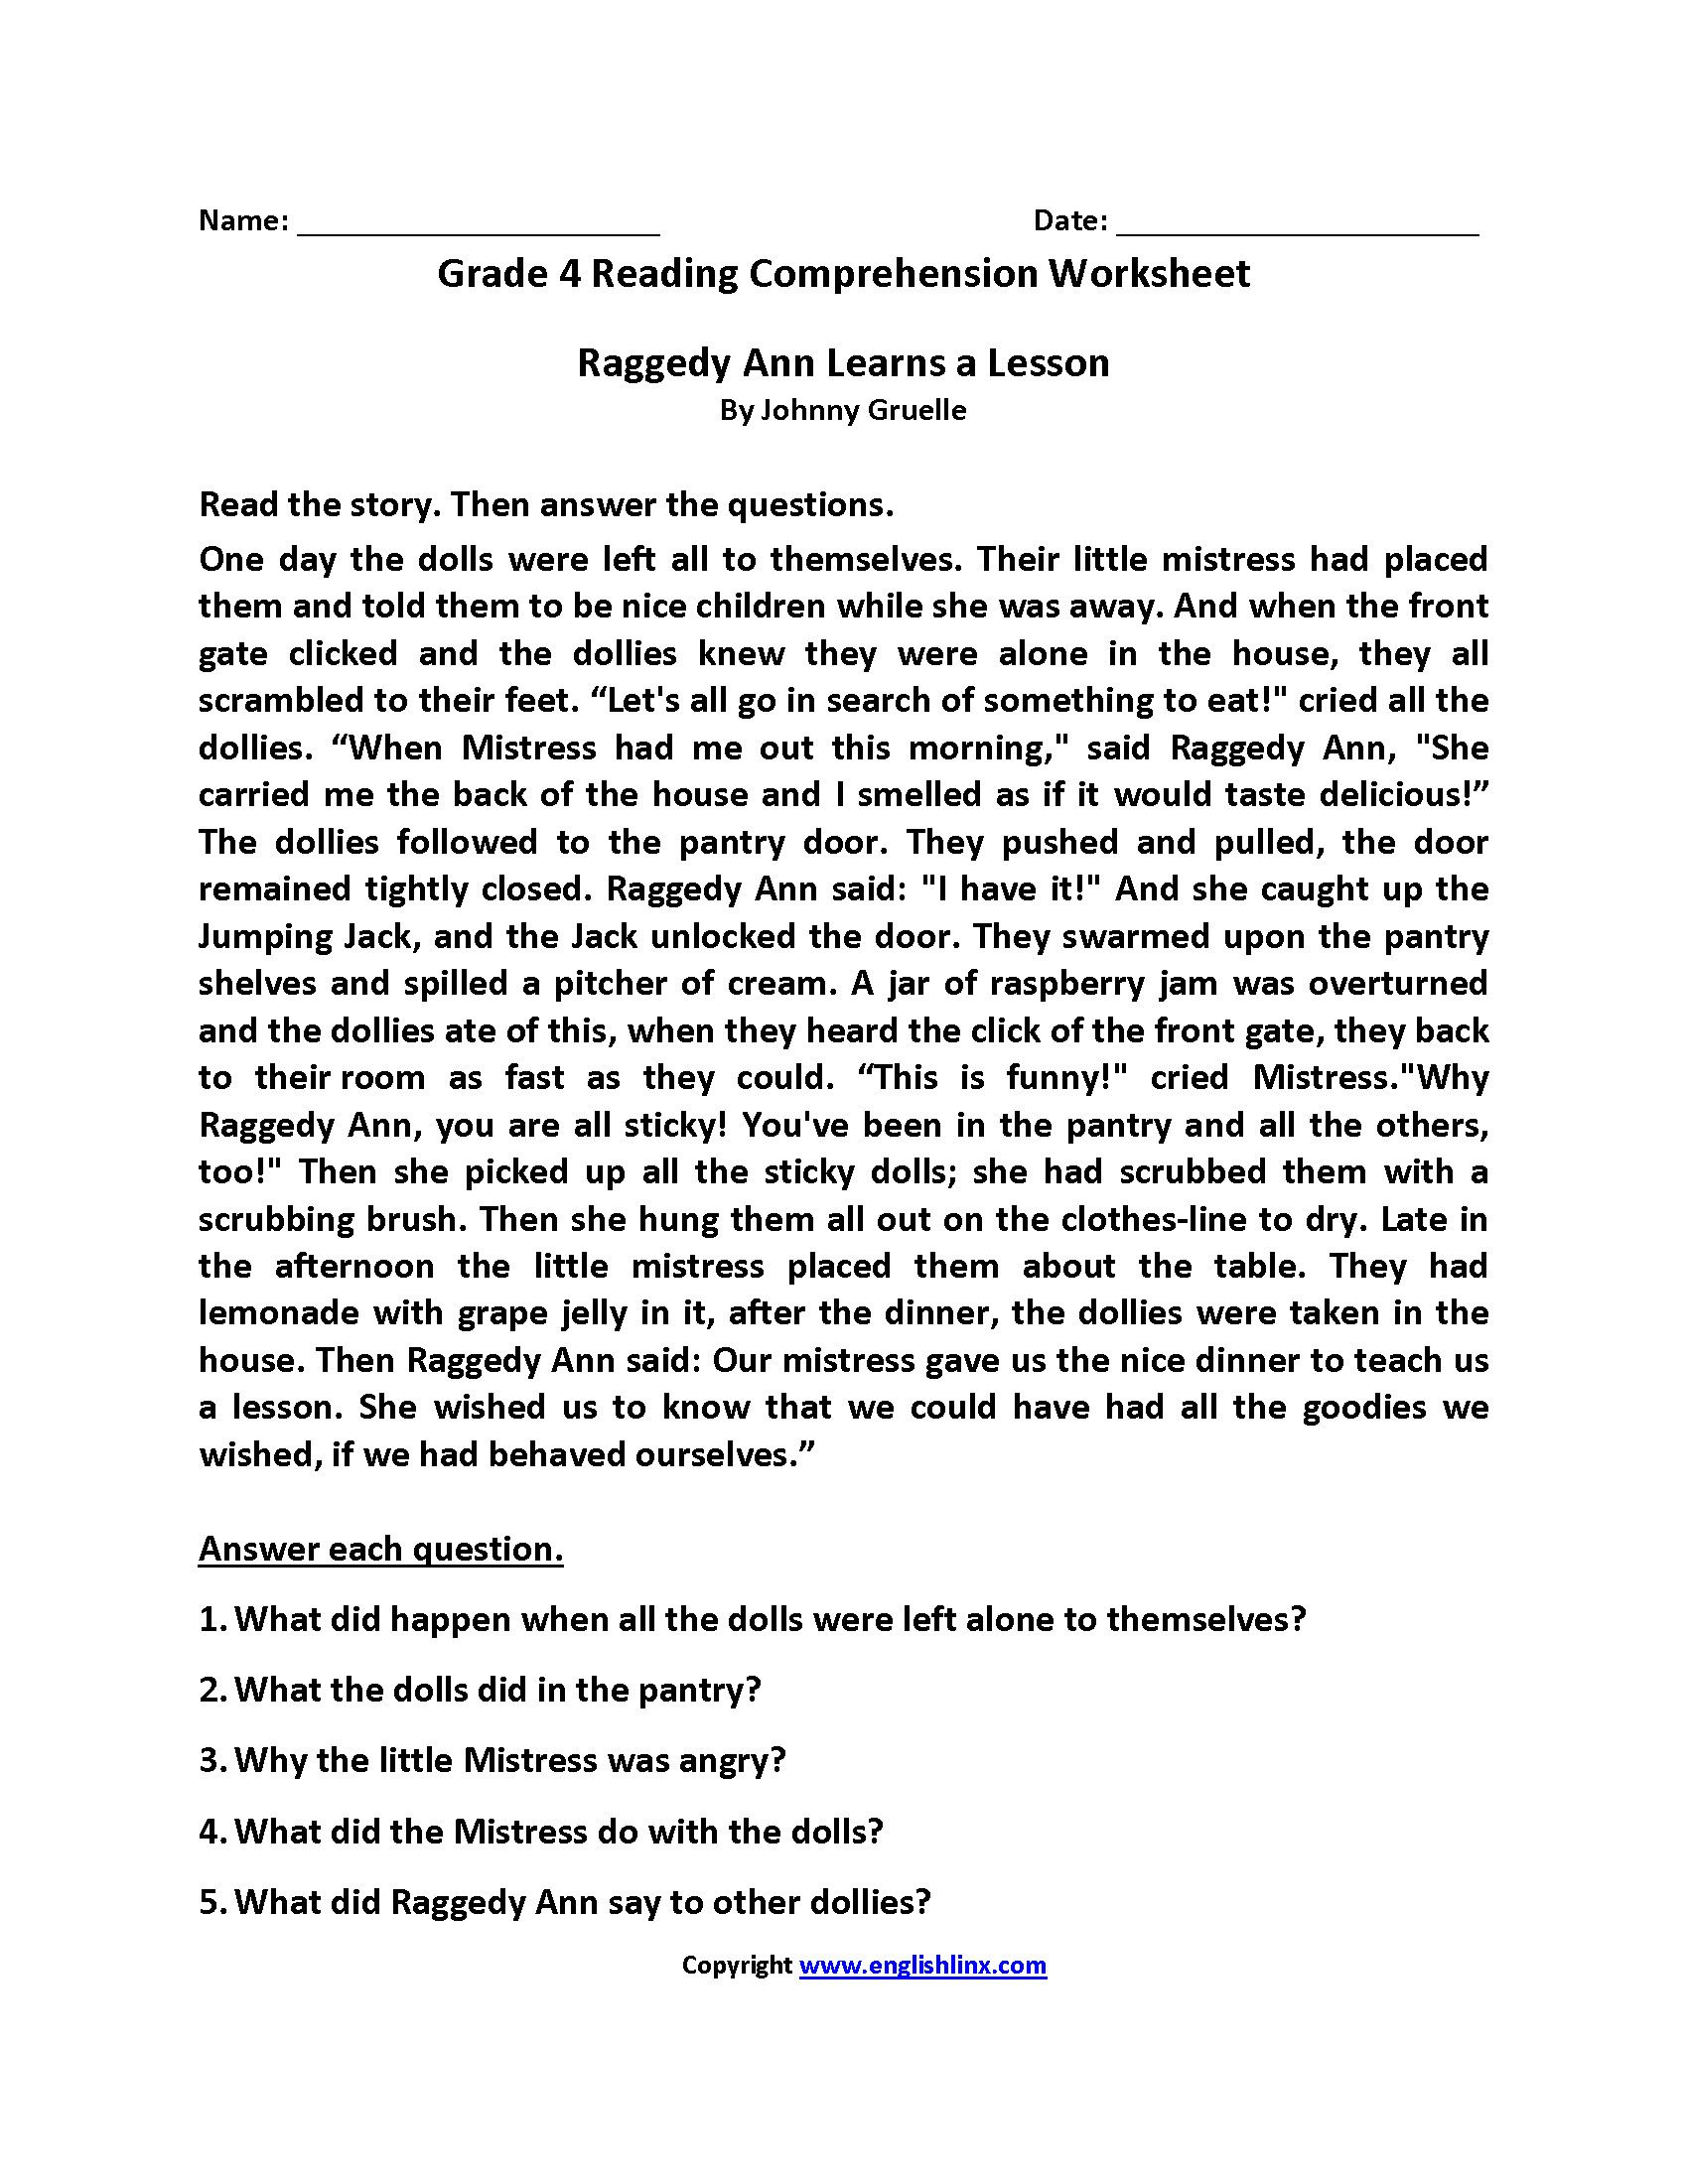 Reading Comprehension Worksheets Fourth Grade 4 4th Raggedy Ann Learns A Lesson Reading Comprehension Worksheets Comprehension Worksheets Reading Comprehension [ 2200 x 1700 Pixel ]